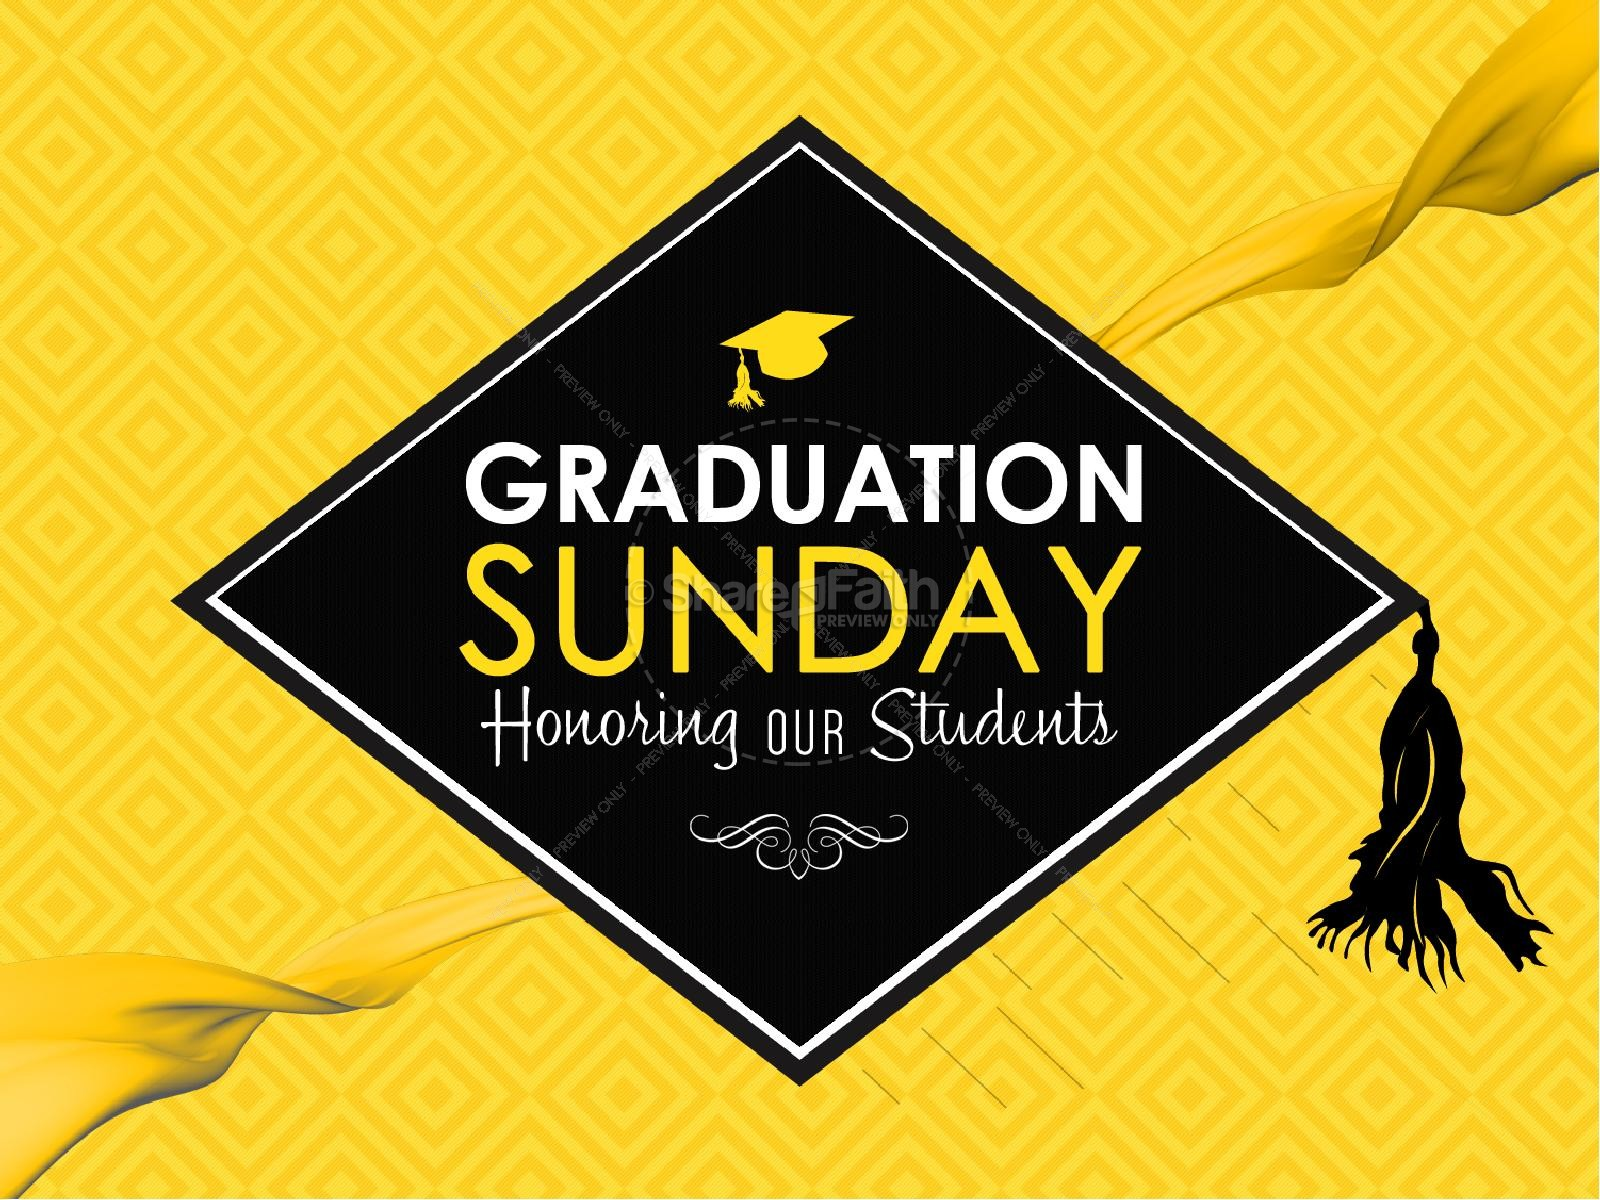 Graduation Sunday Honoring Church PowerPoint | Graduation ...